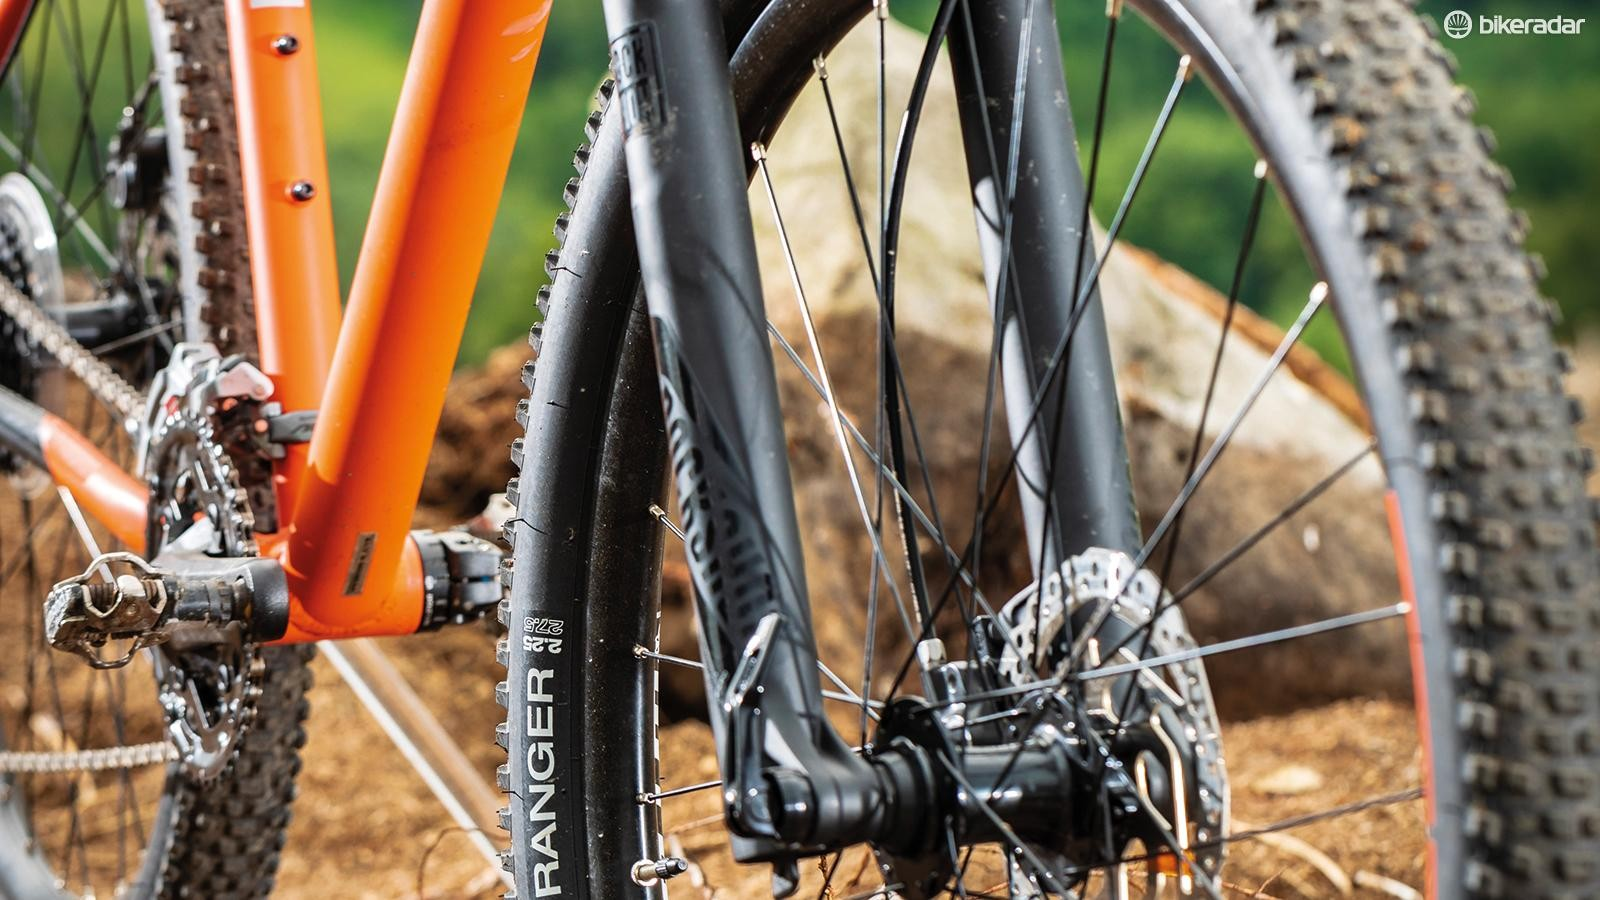 With its tapered steerer and 15mm axle, the Recon RL fork is a big bonus